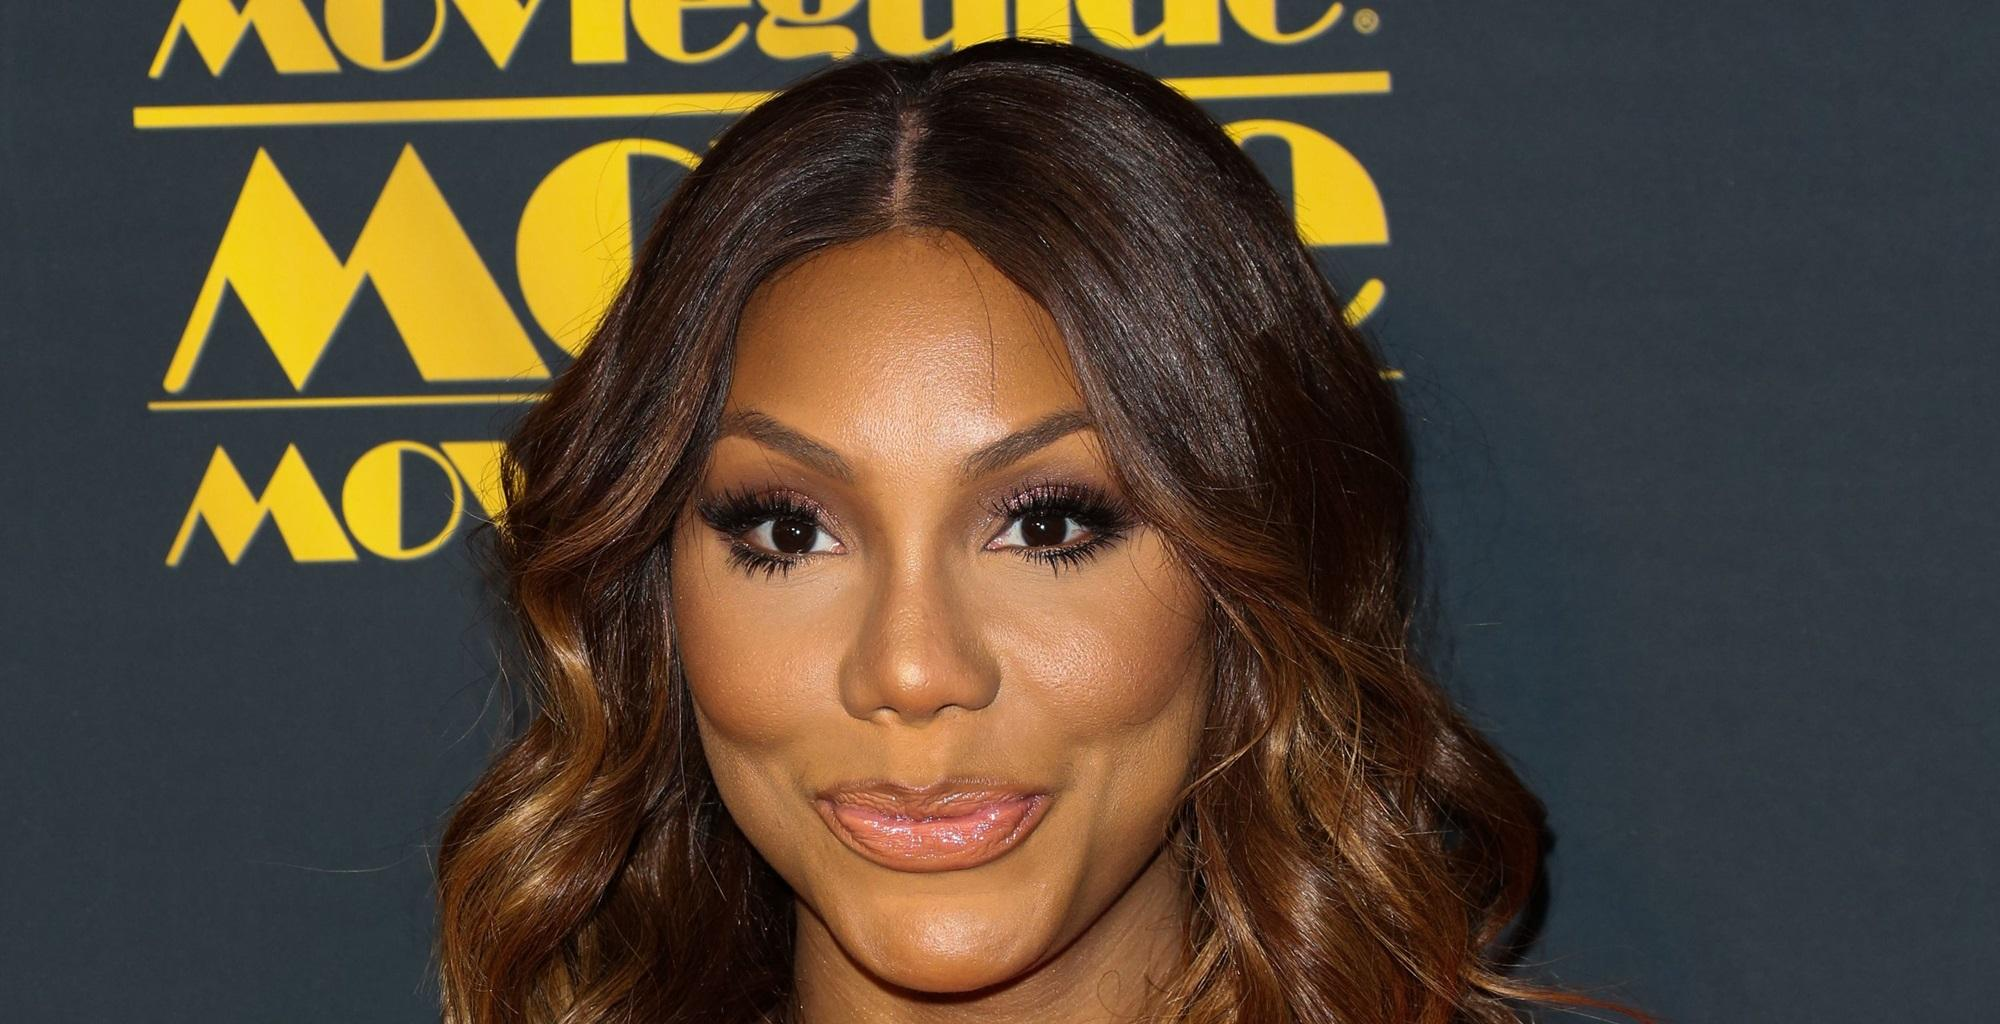 Tamar Braxton Meets Her Fans In D.C. This Weekend - Check Out Her Video